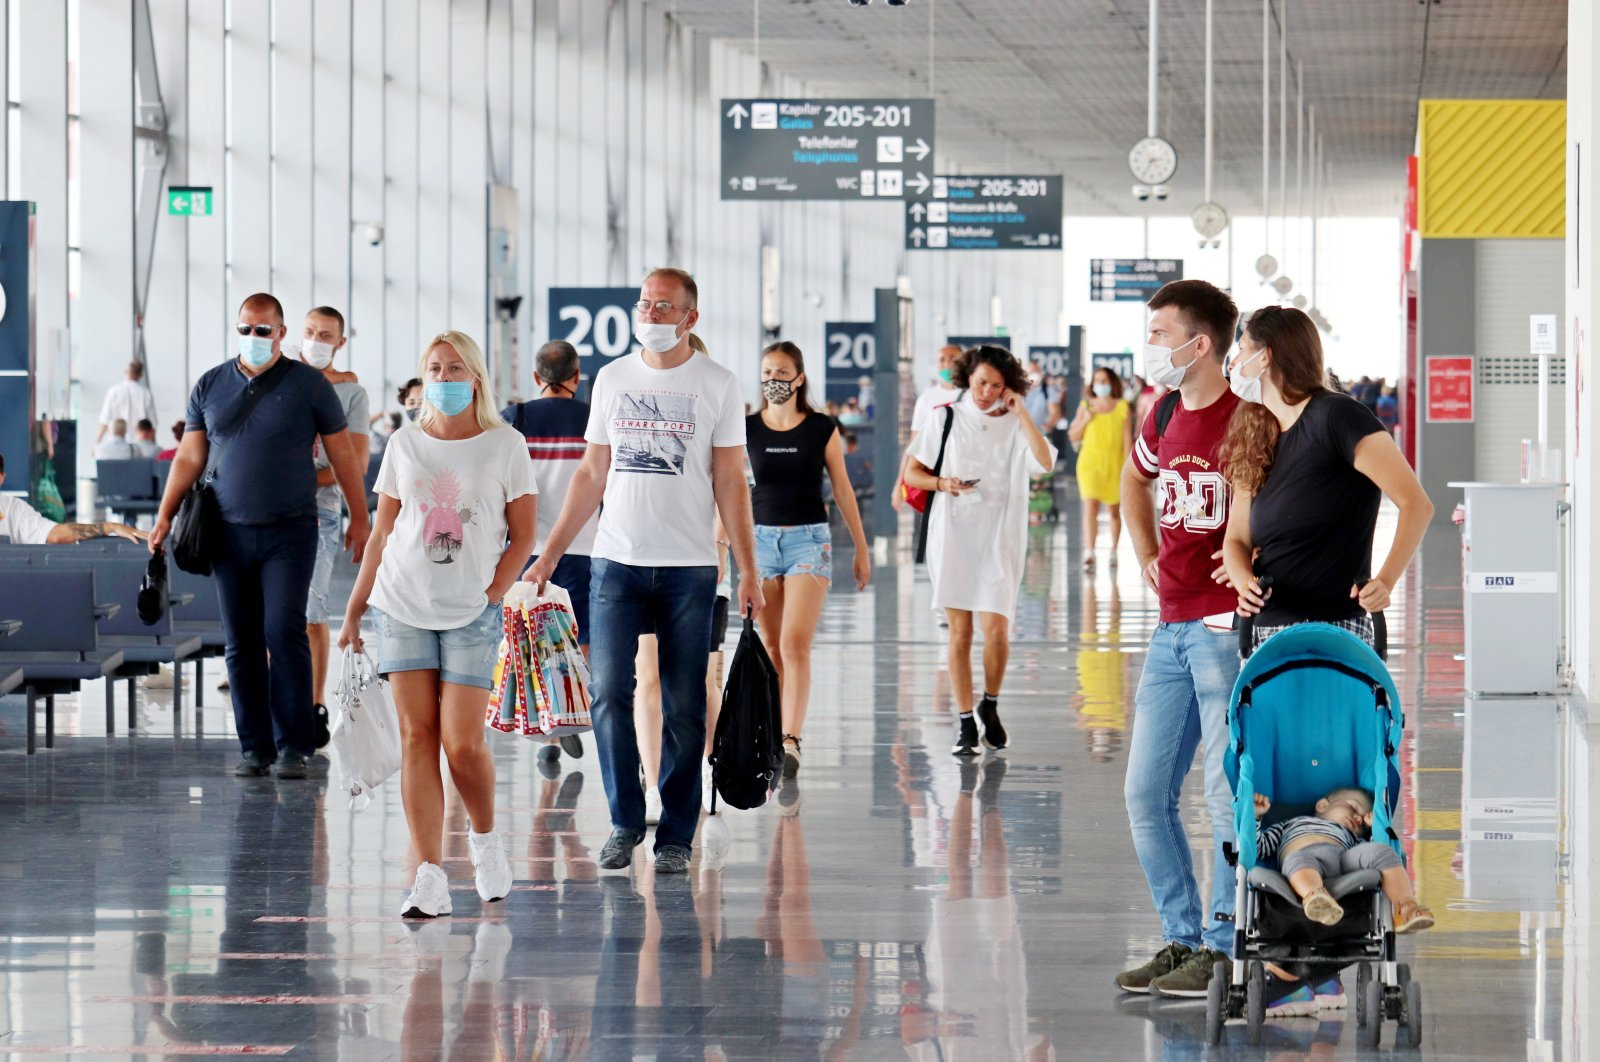 Tourists in masks walk in a terminal at Bodrum-Milas Airport during the coronavirus pandemic, southern Muğla province, Turkey. (Shutterstock photo by Oleg Elkov)